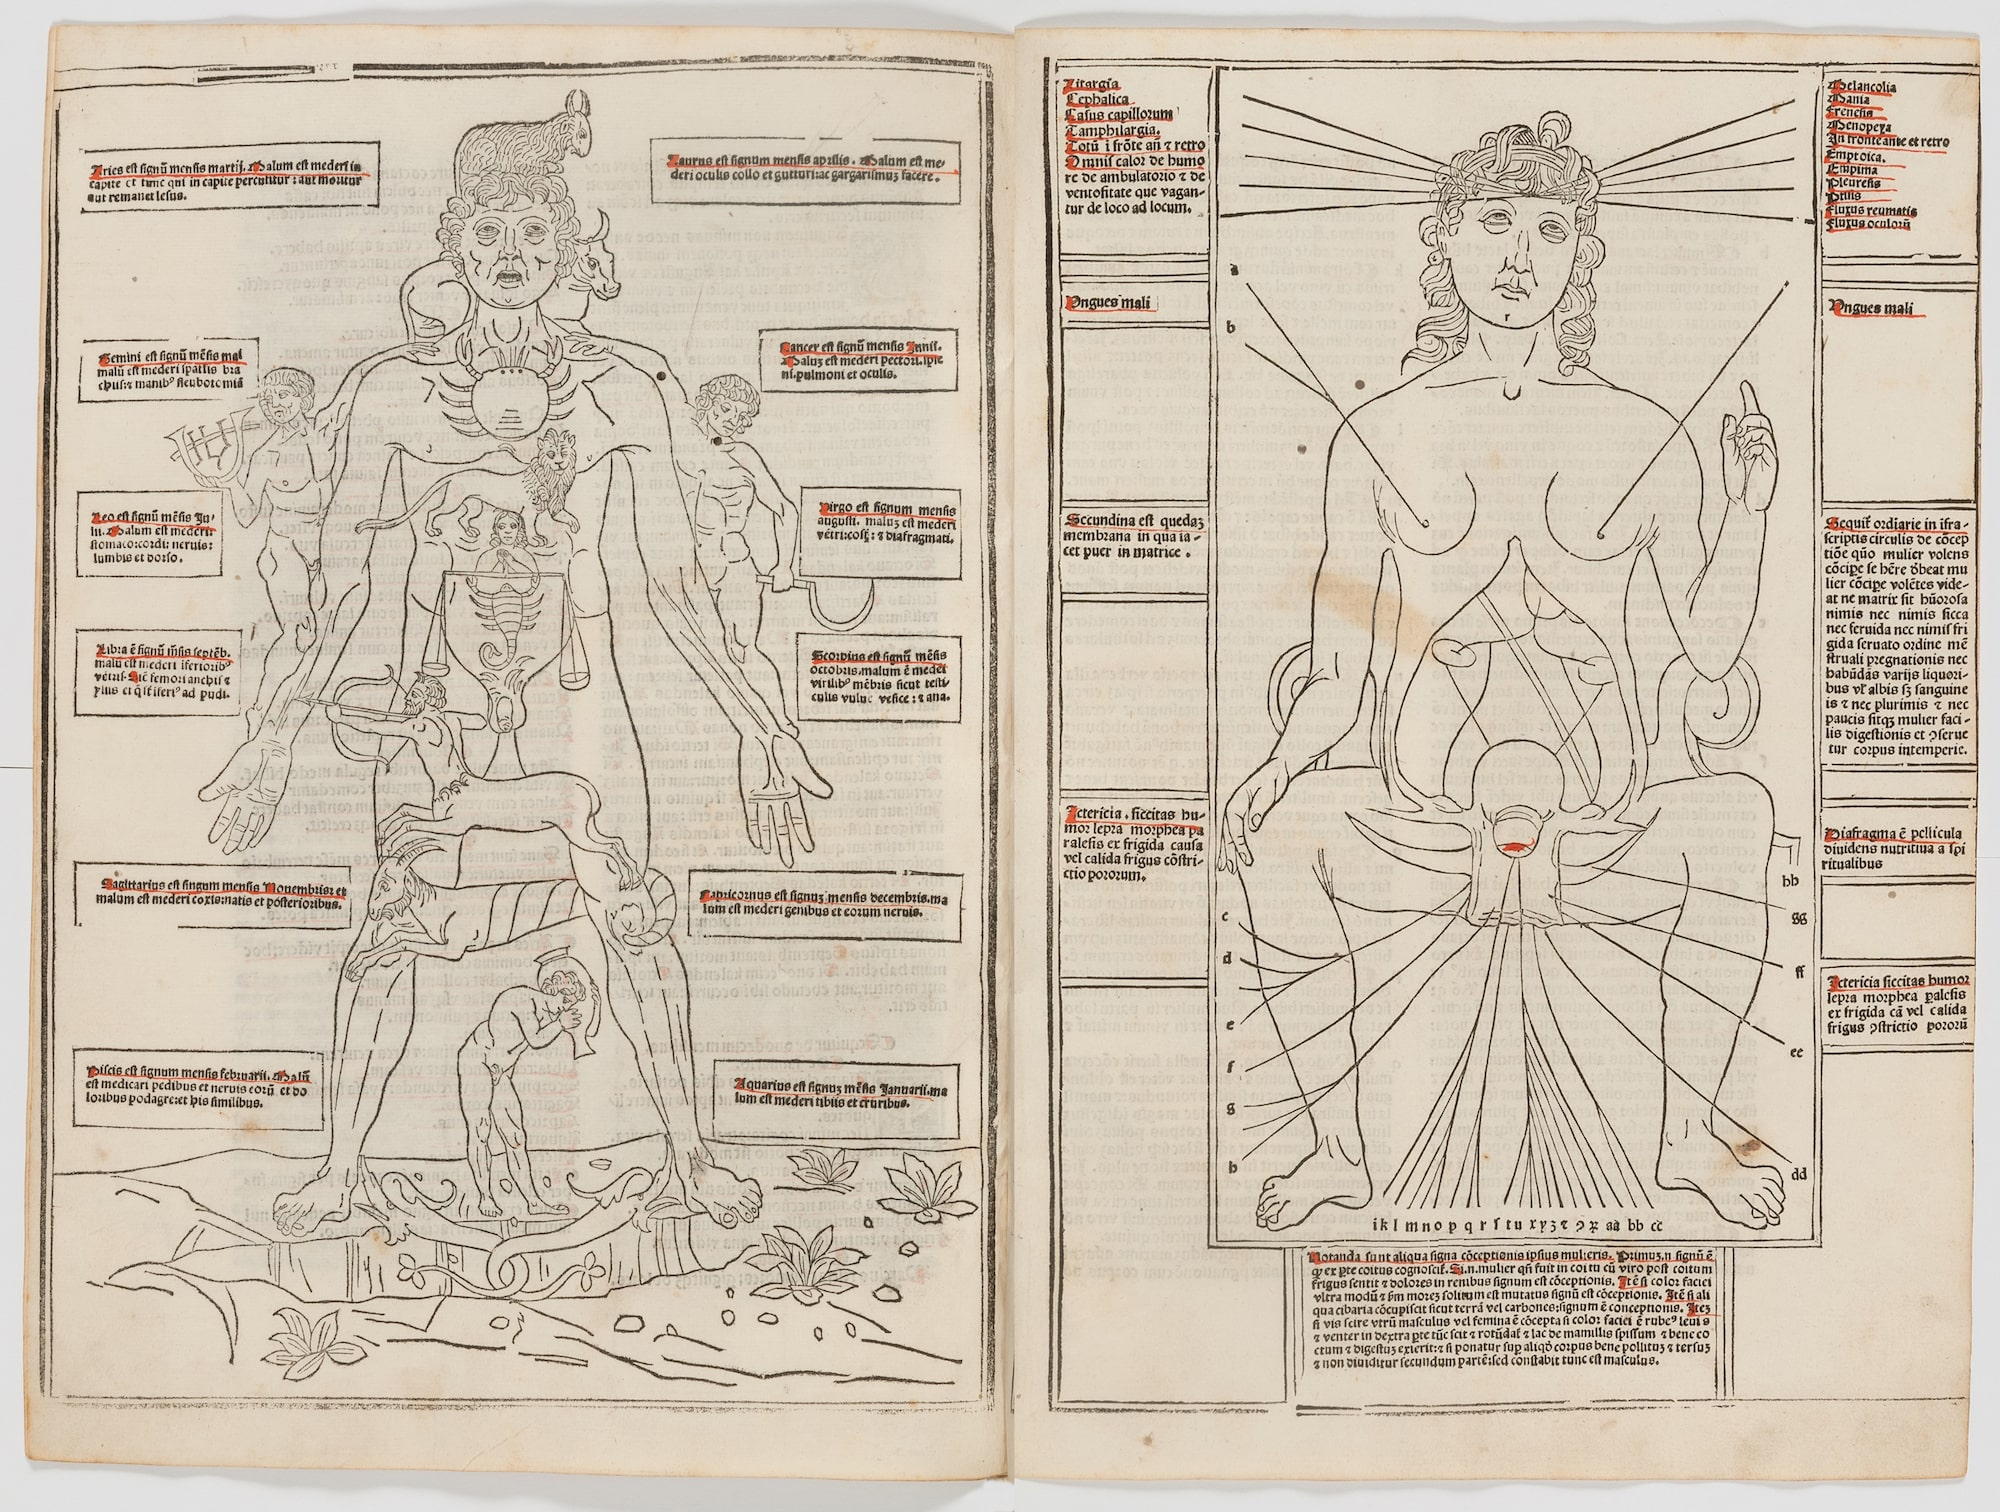 Diagram of a male body and signs of the zodiac on the left, diagram of the female body on the right.